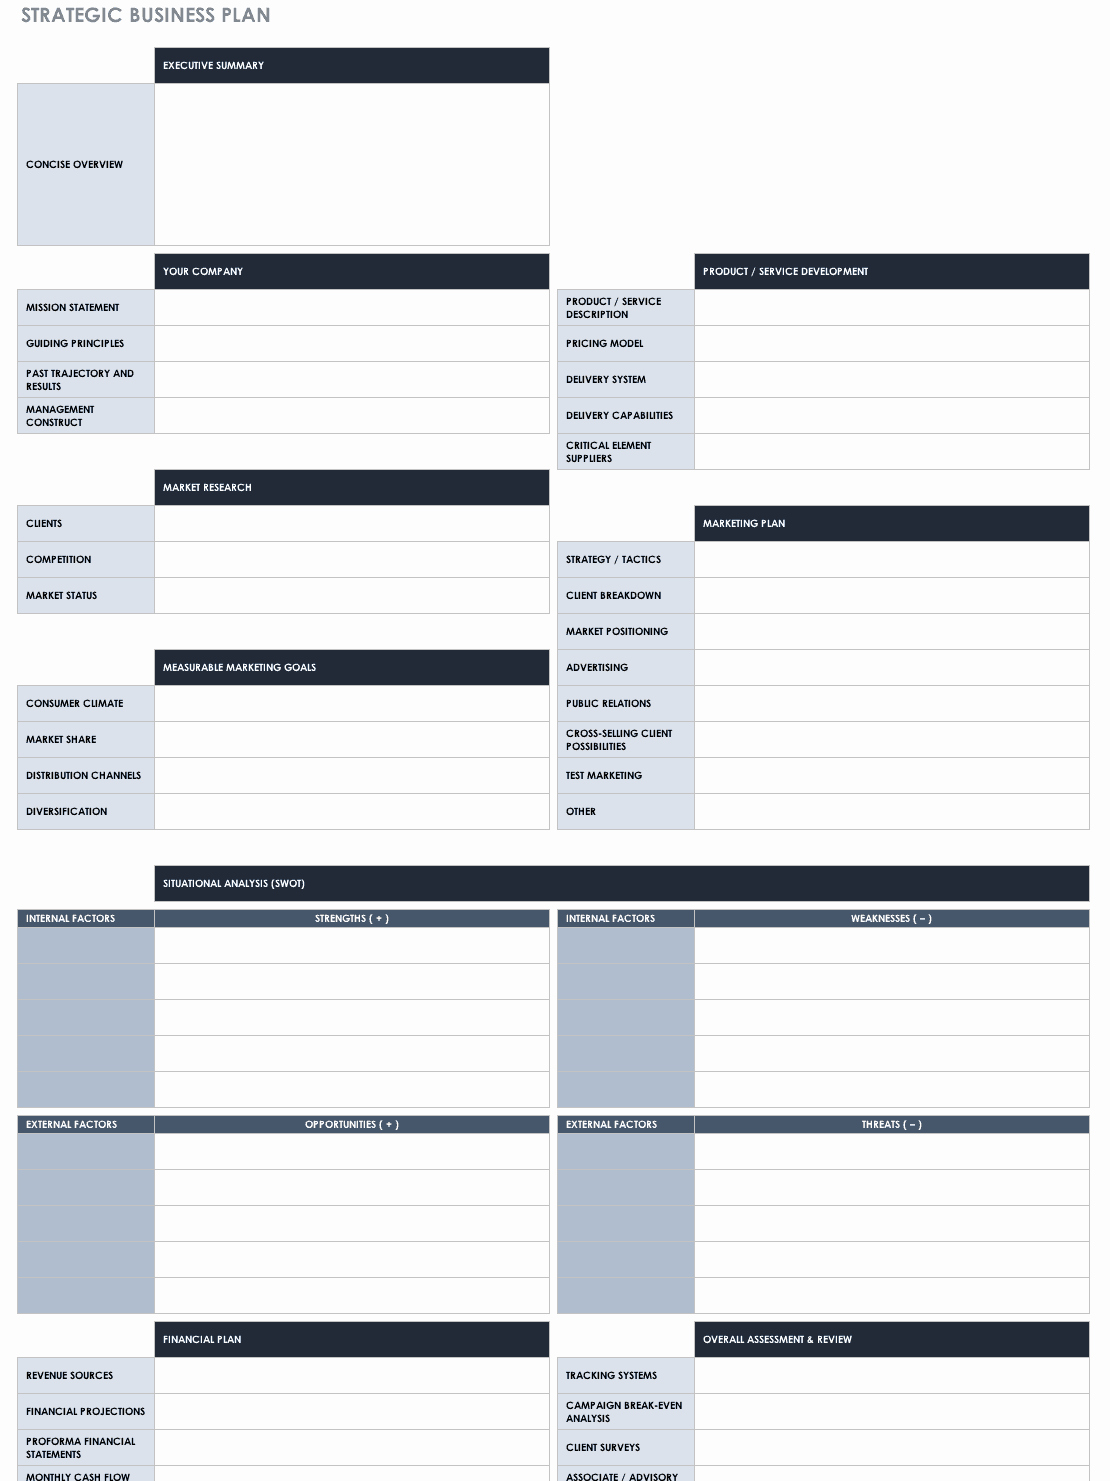 Strategic Planning Template Word Inspirational Free Strategic Planning Templates